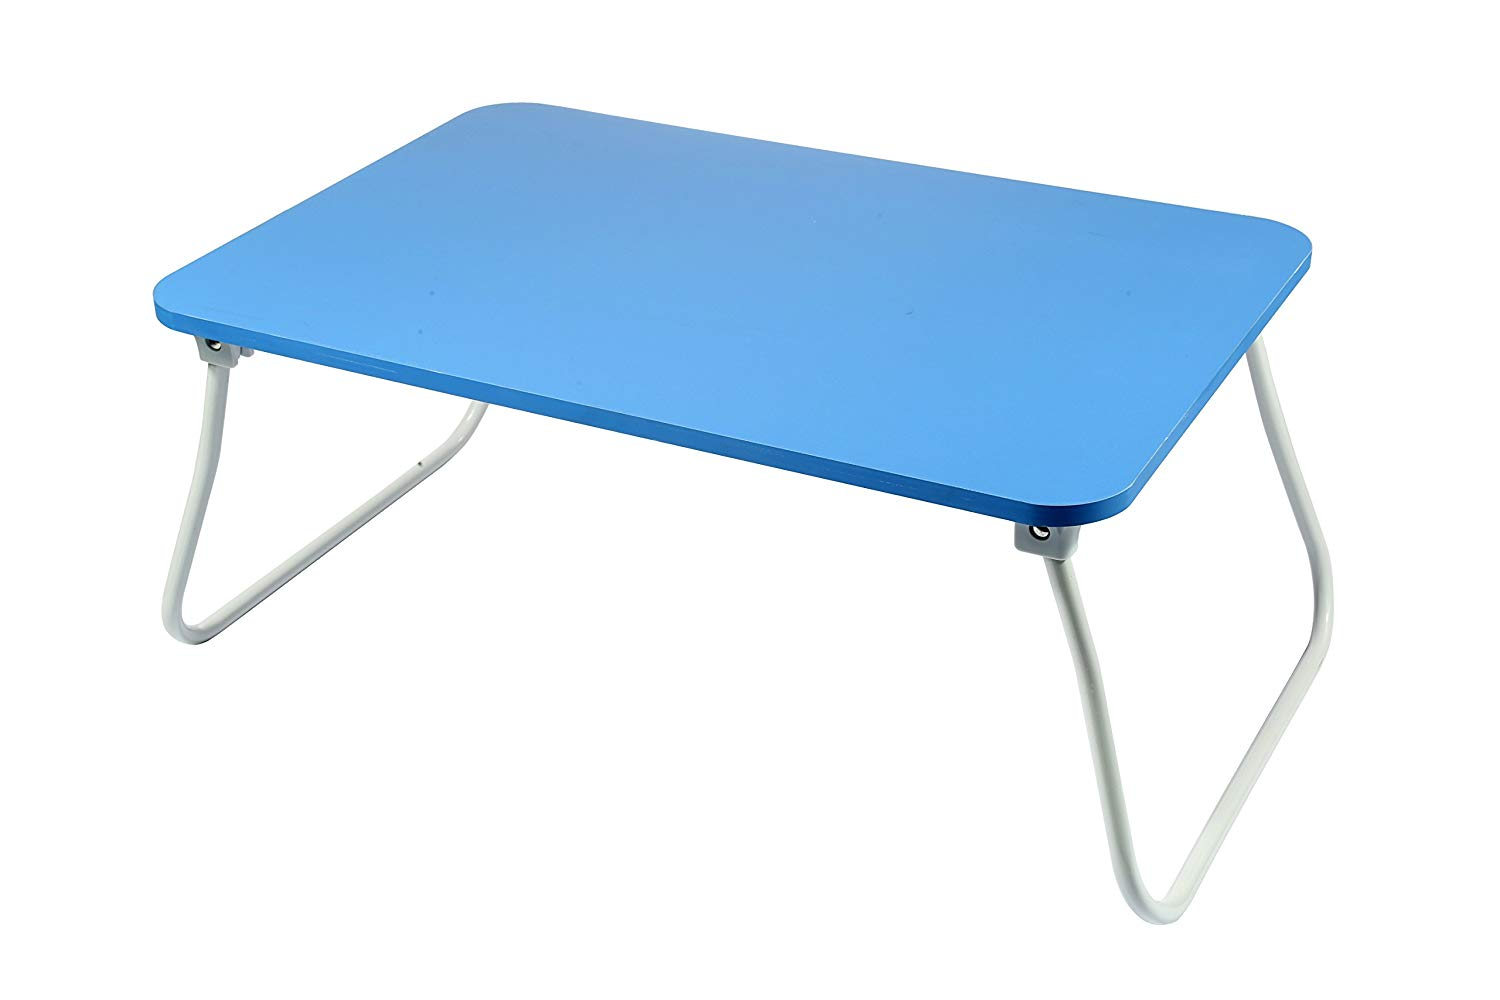 """Homebi Lap Desk Tray Table Laptop Stand Portable Bed Desk Breakfast Tray for Bed Couch and Sofa with MDF Top Board and Foldable Metal Legs (11.20""""H, Blue)"""